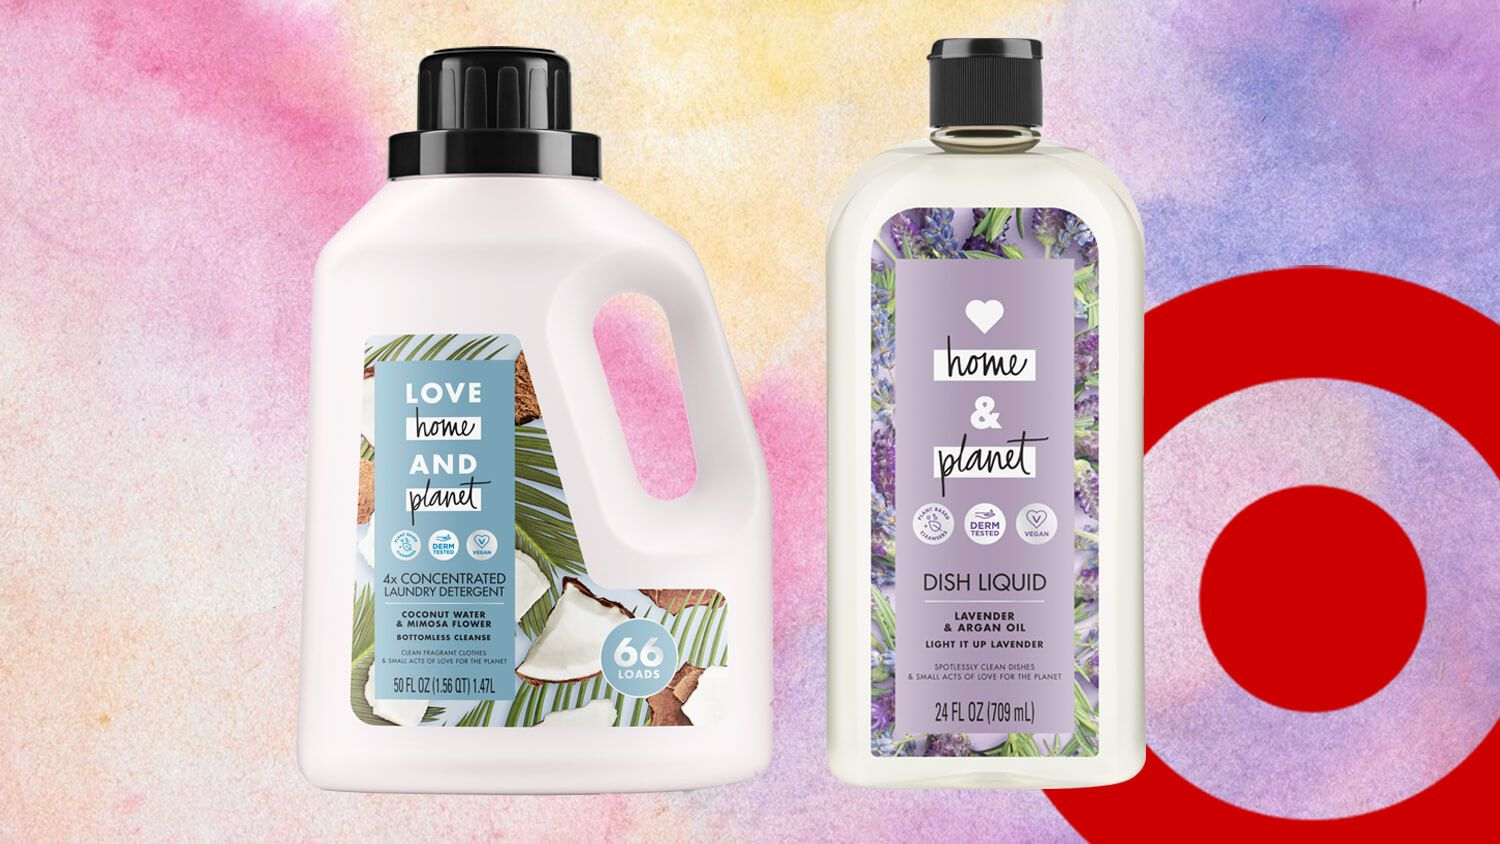 Target Launches New Range of 38 CrueltyFree HomeCleaning